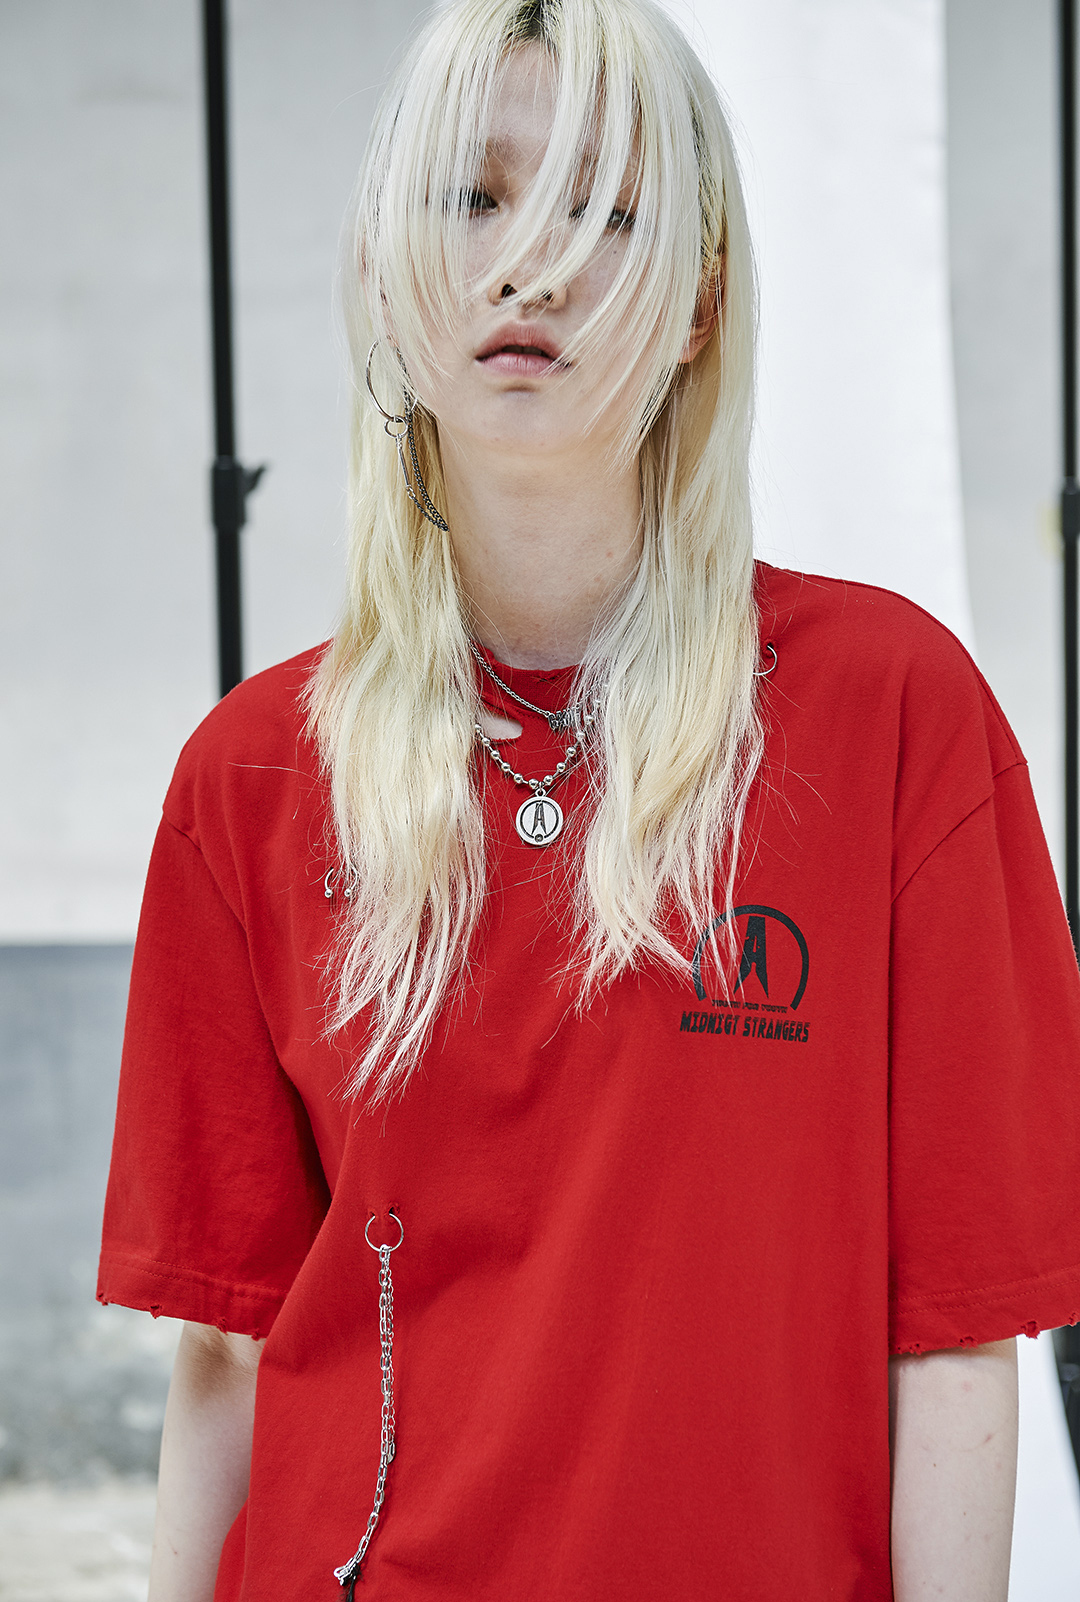 ★ANOTHERYOUTH★17ss  piercing t - red ユニセックス